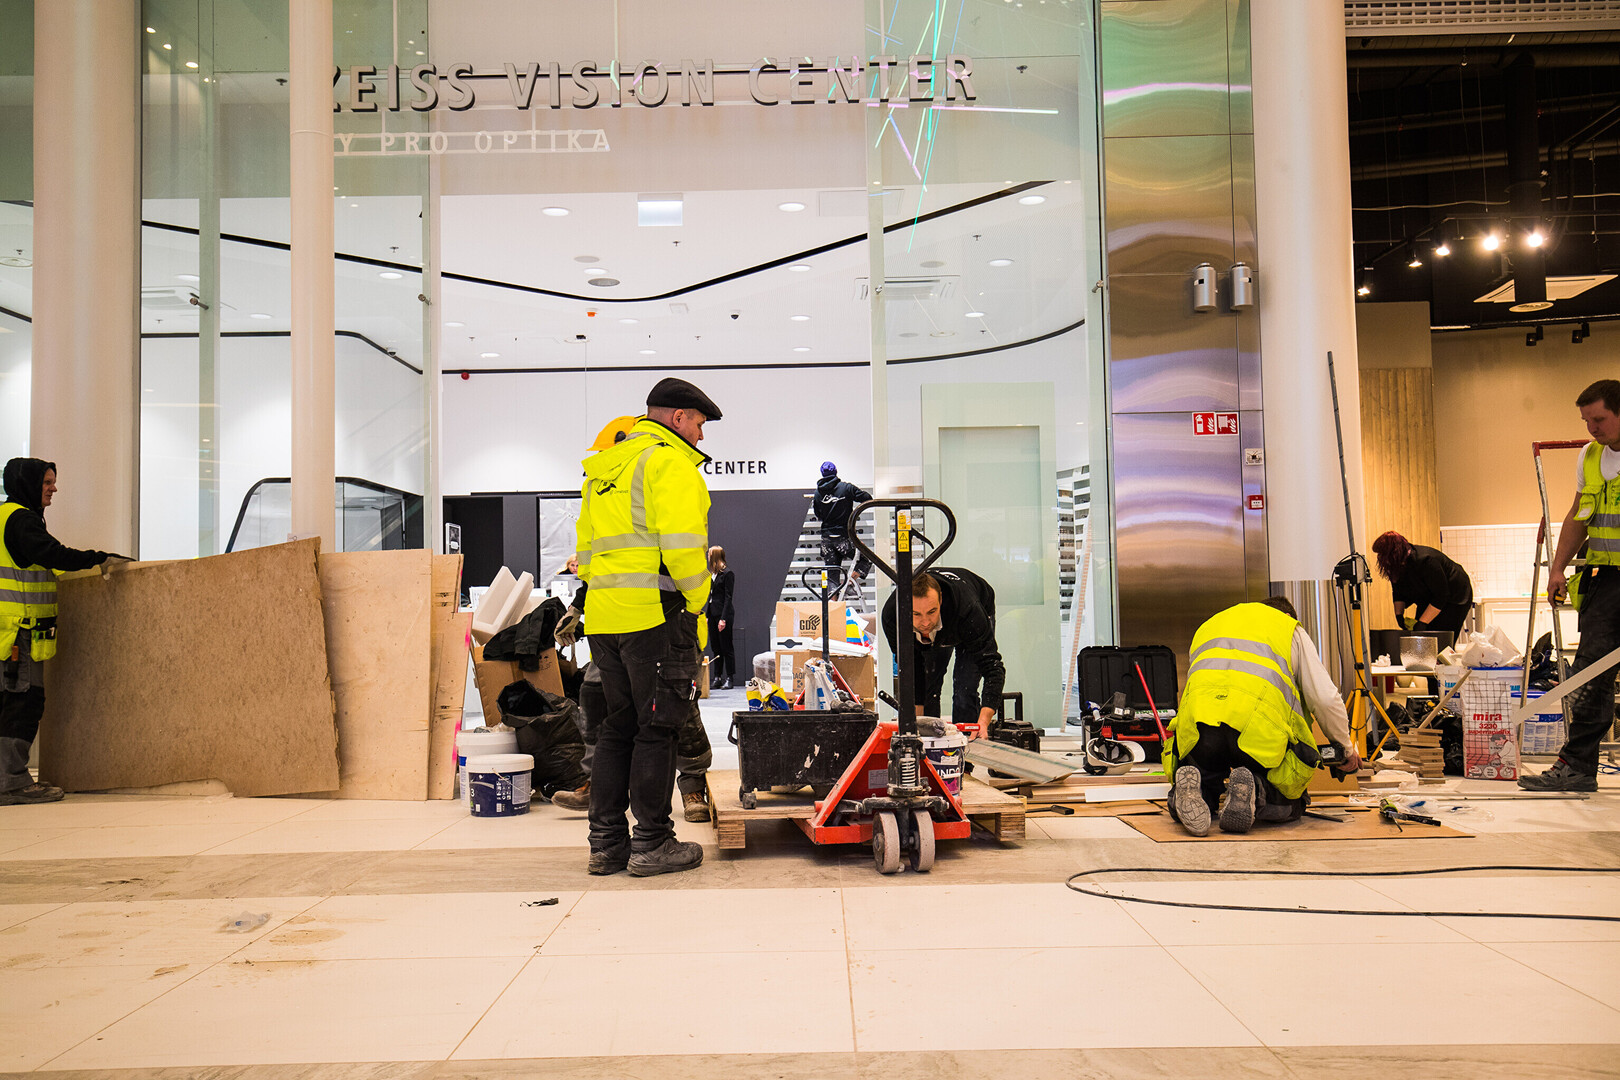 10d31adcace Gallery: New T1 shopping centre opens in Tallinn | Economy | ERR